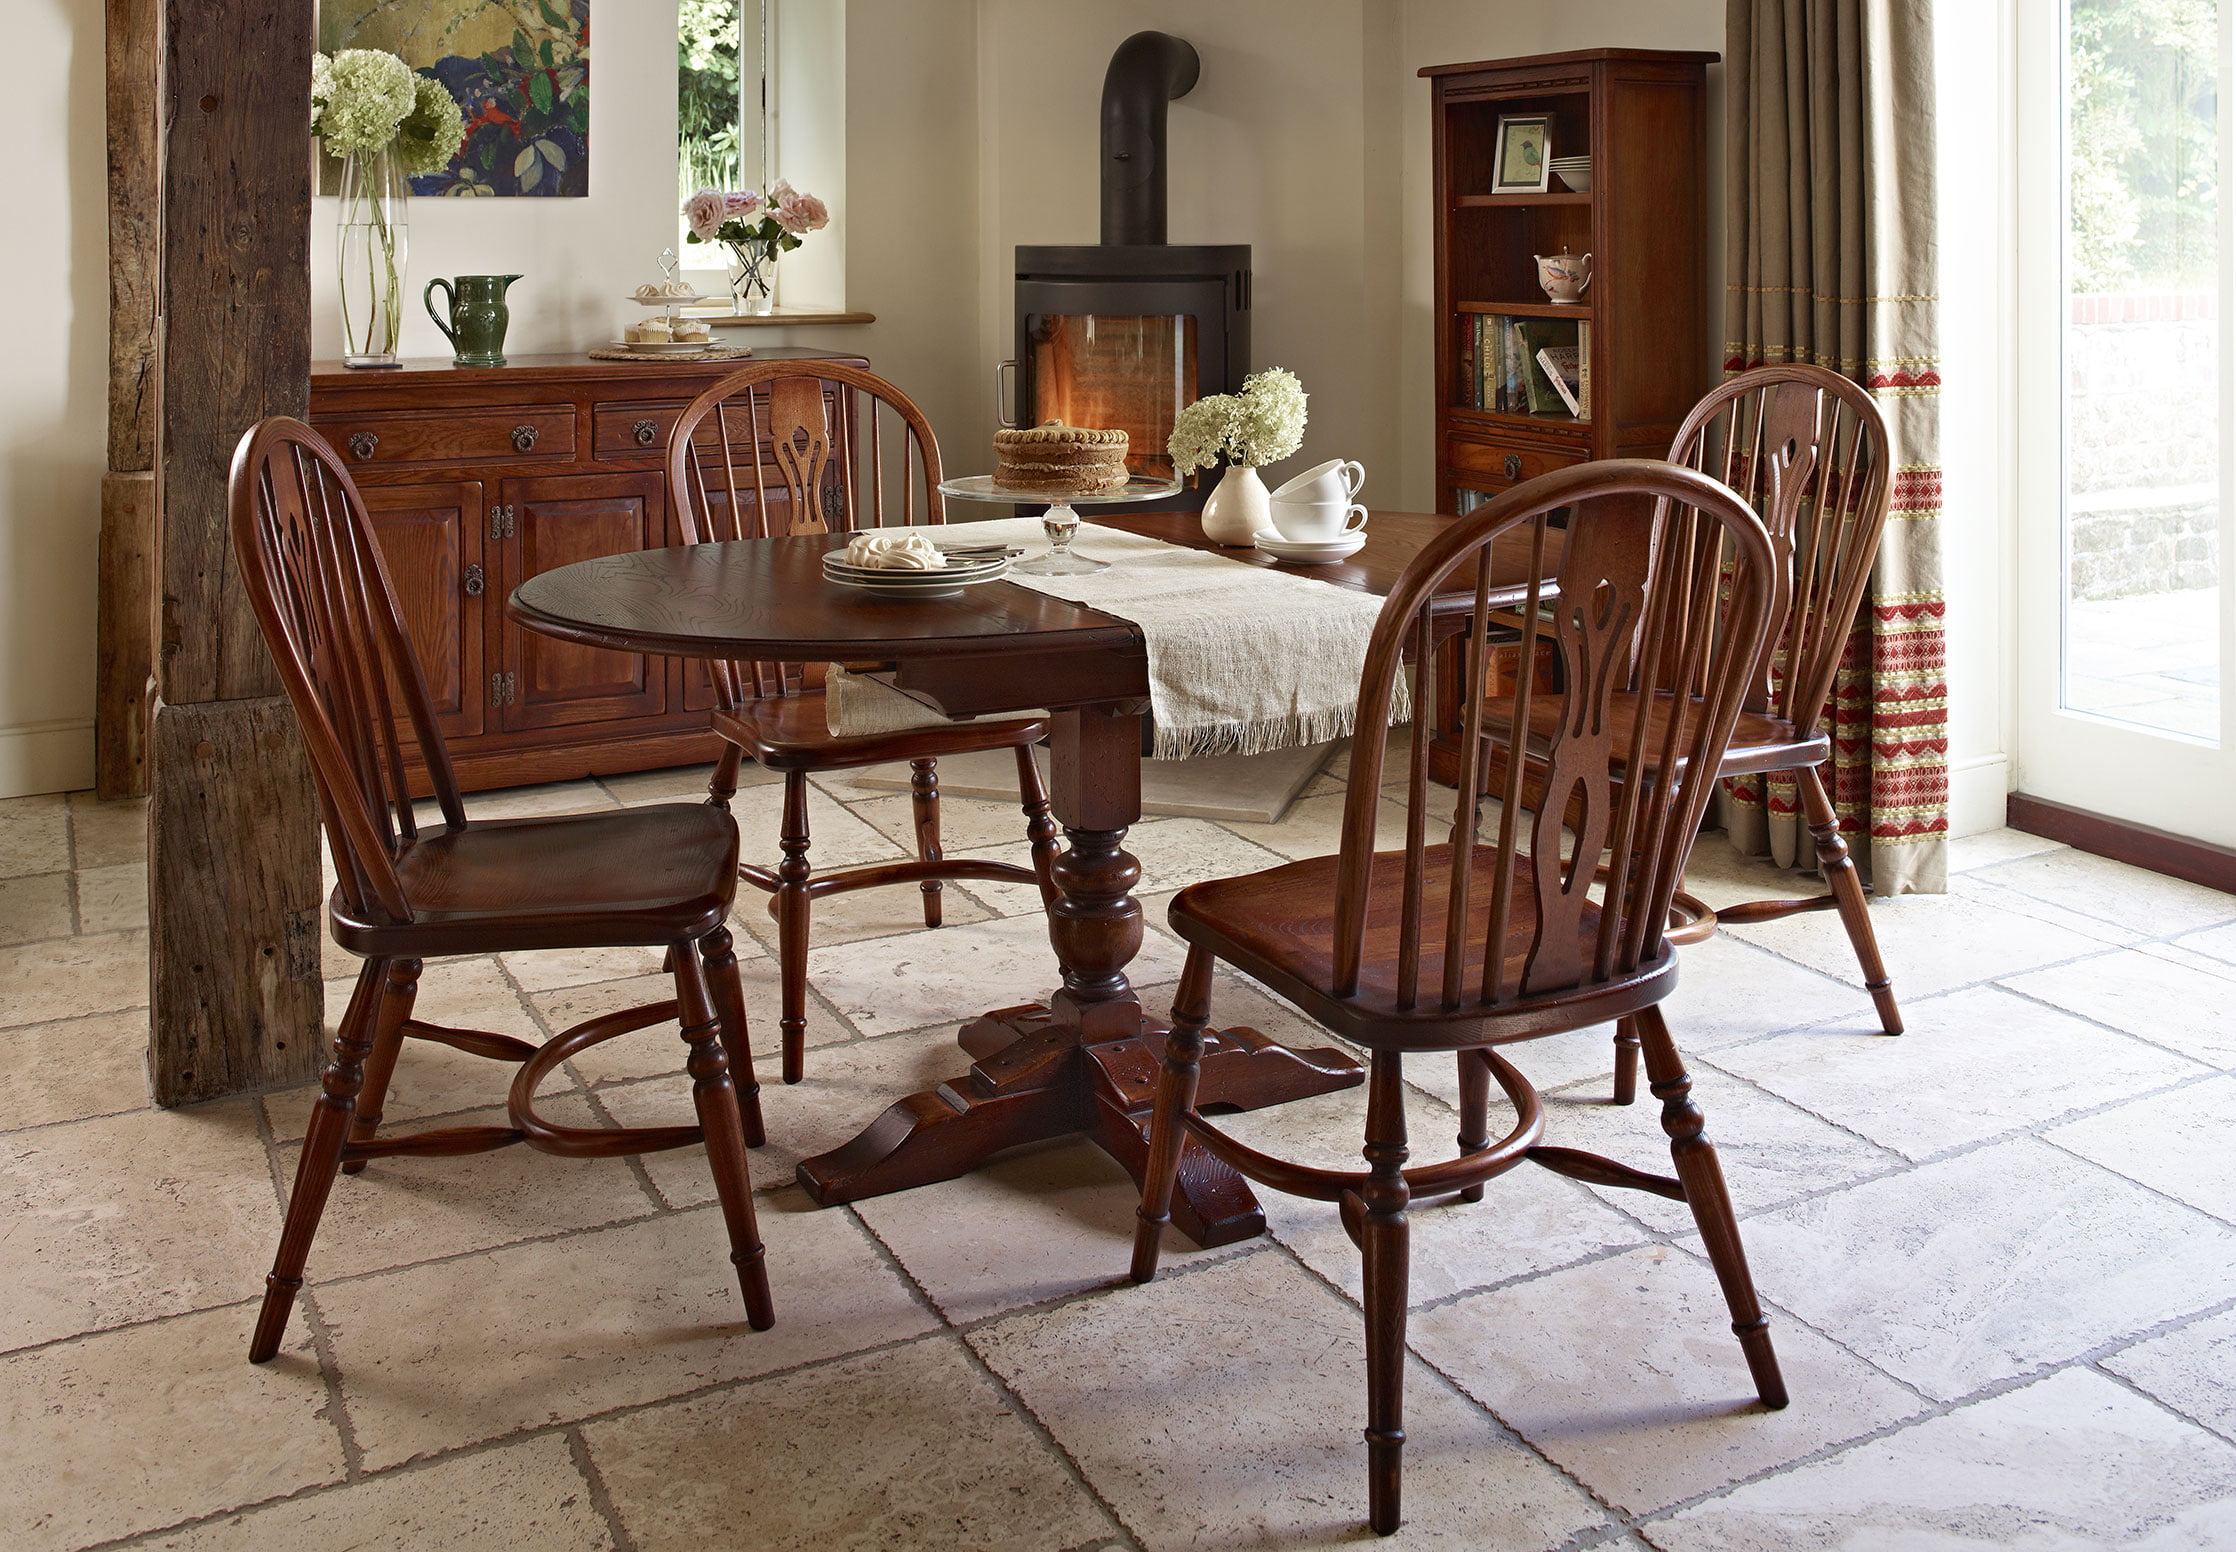 Old charm furniture collection   wood bros